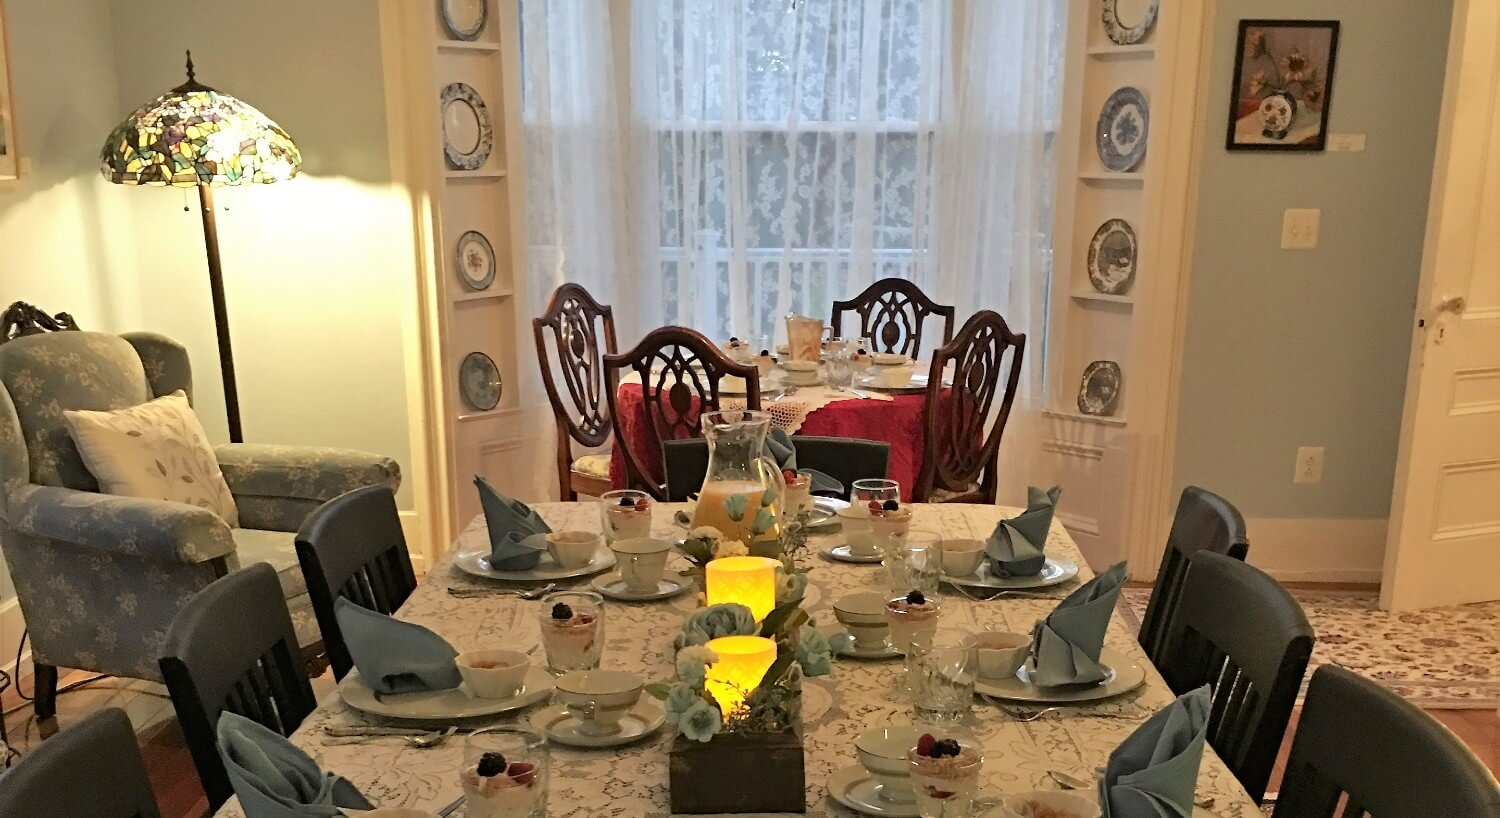 Long dining room table set for breakfast with china and folded napkins.